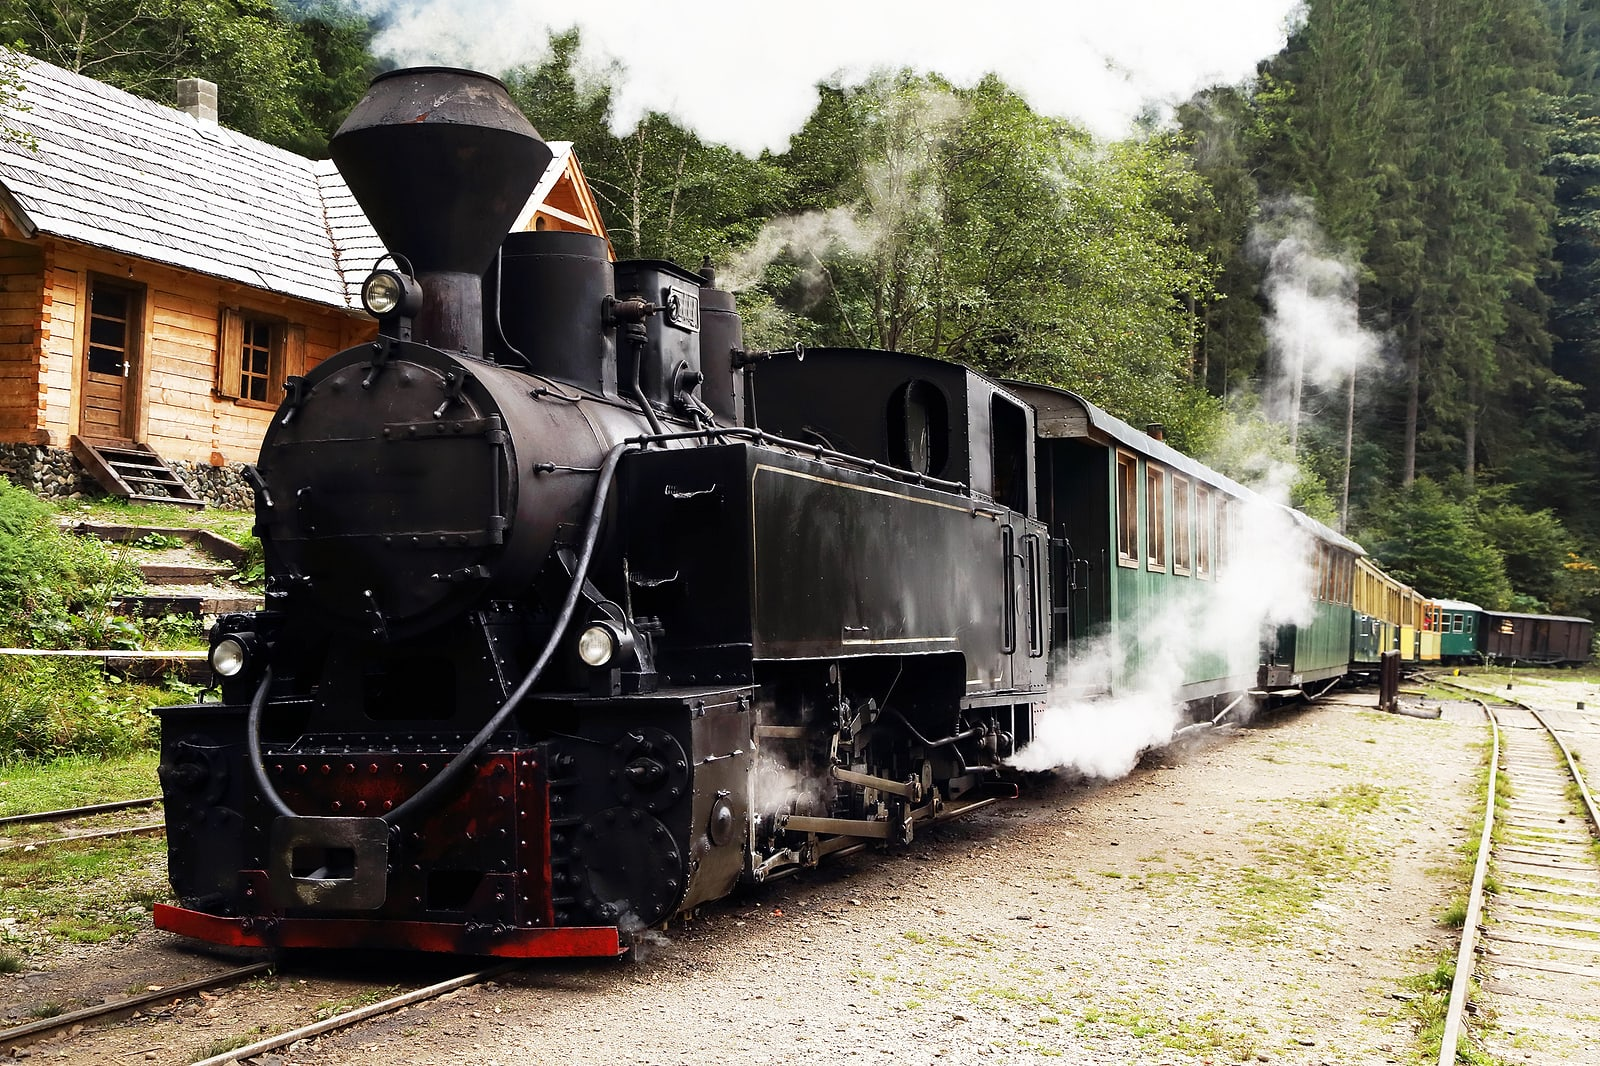 Mocanita touristic train - The last forestry steam working train